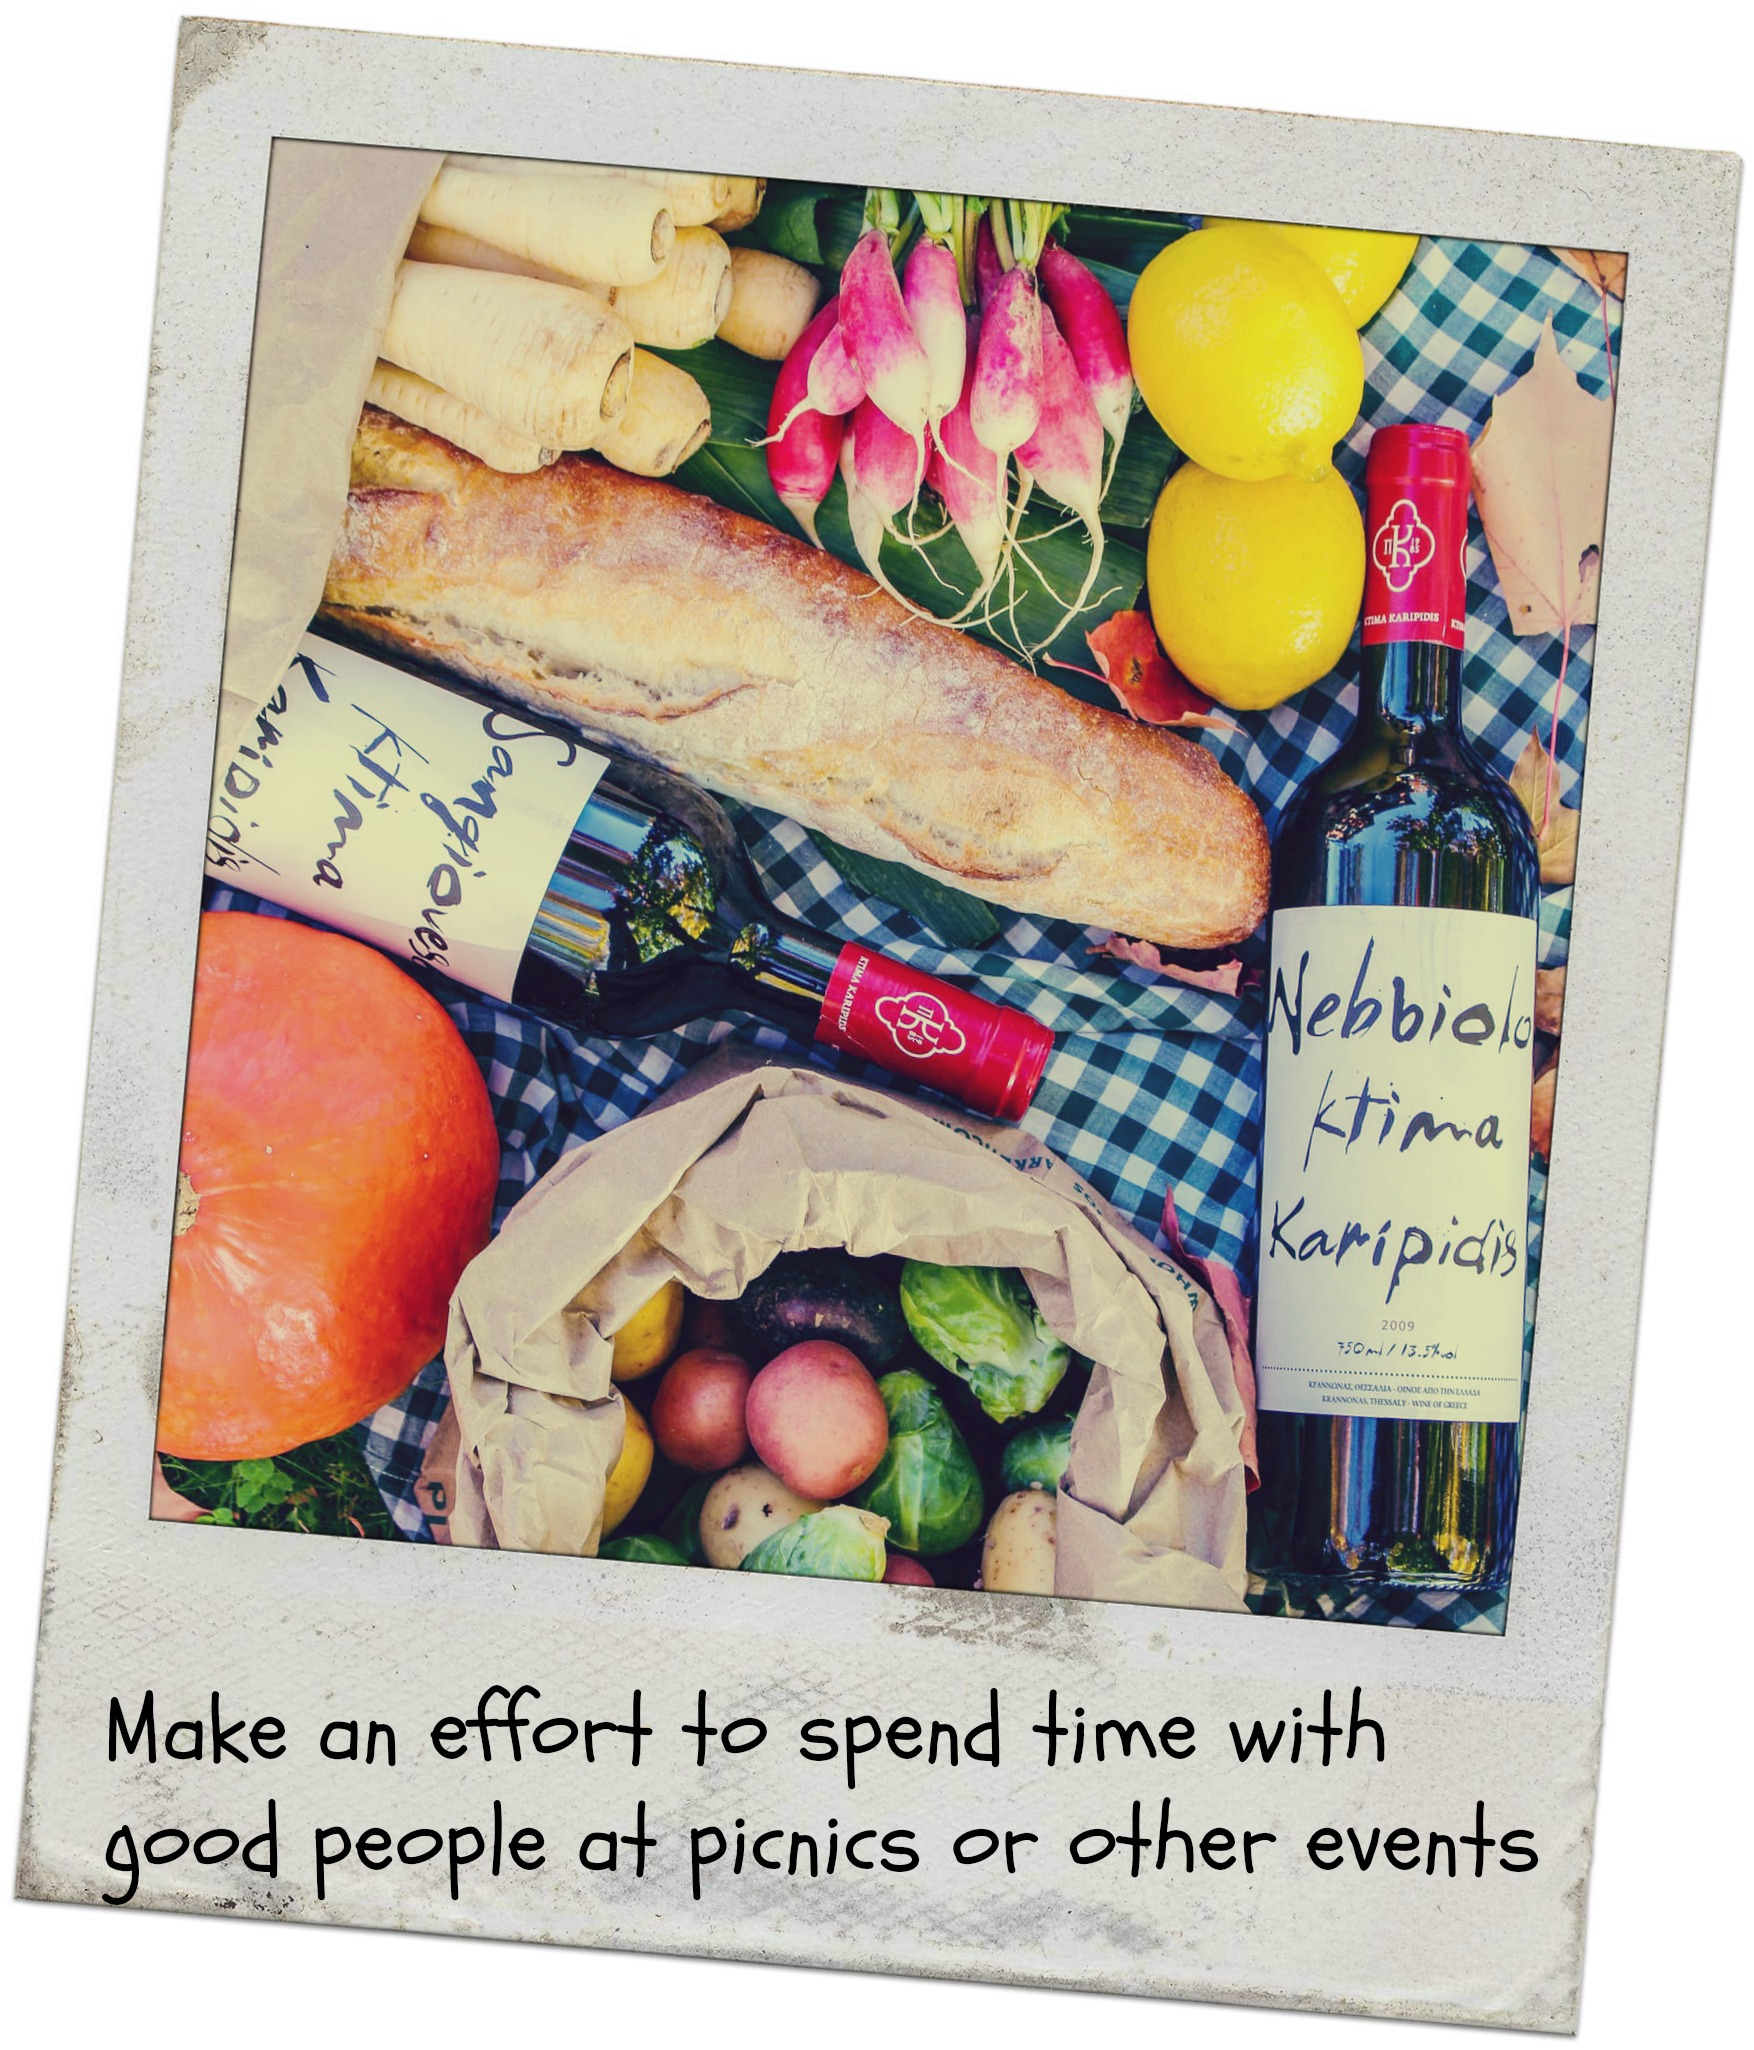 Let your child know how thankful you are to have them in your lives. Make an effort to spend time with good people at picnics or other events